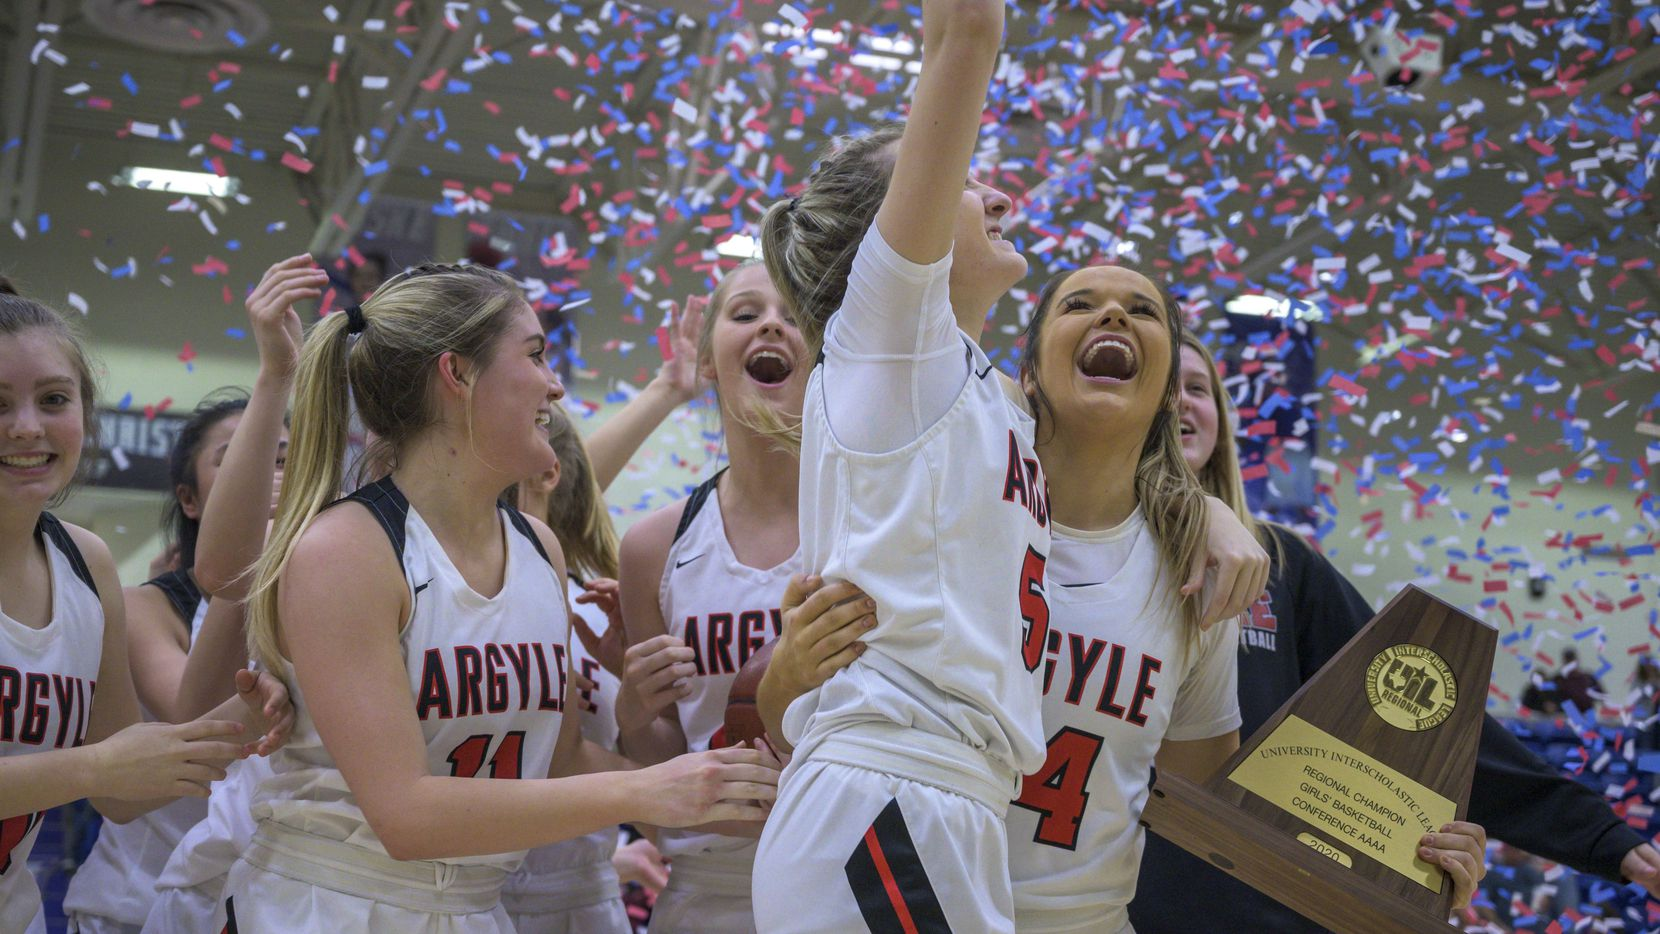 Guard Abby WIlliams celebrates with Rhylie McKinney after winning the Class 4A Region 1 championship, Feb. 29, 2020. Argyle defeated Bridgeport, 42-38.